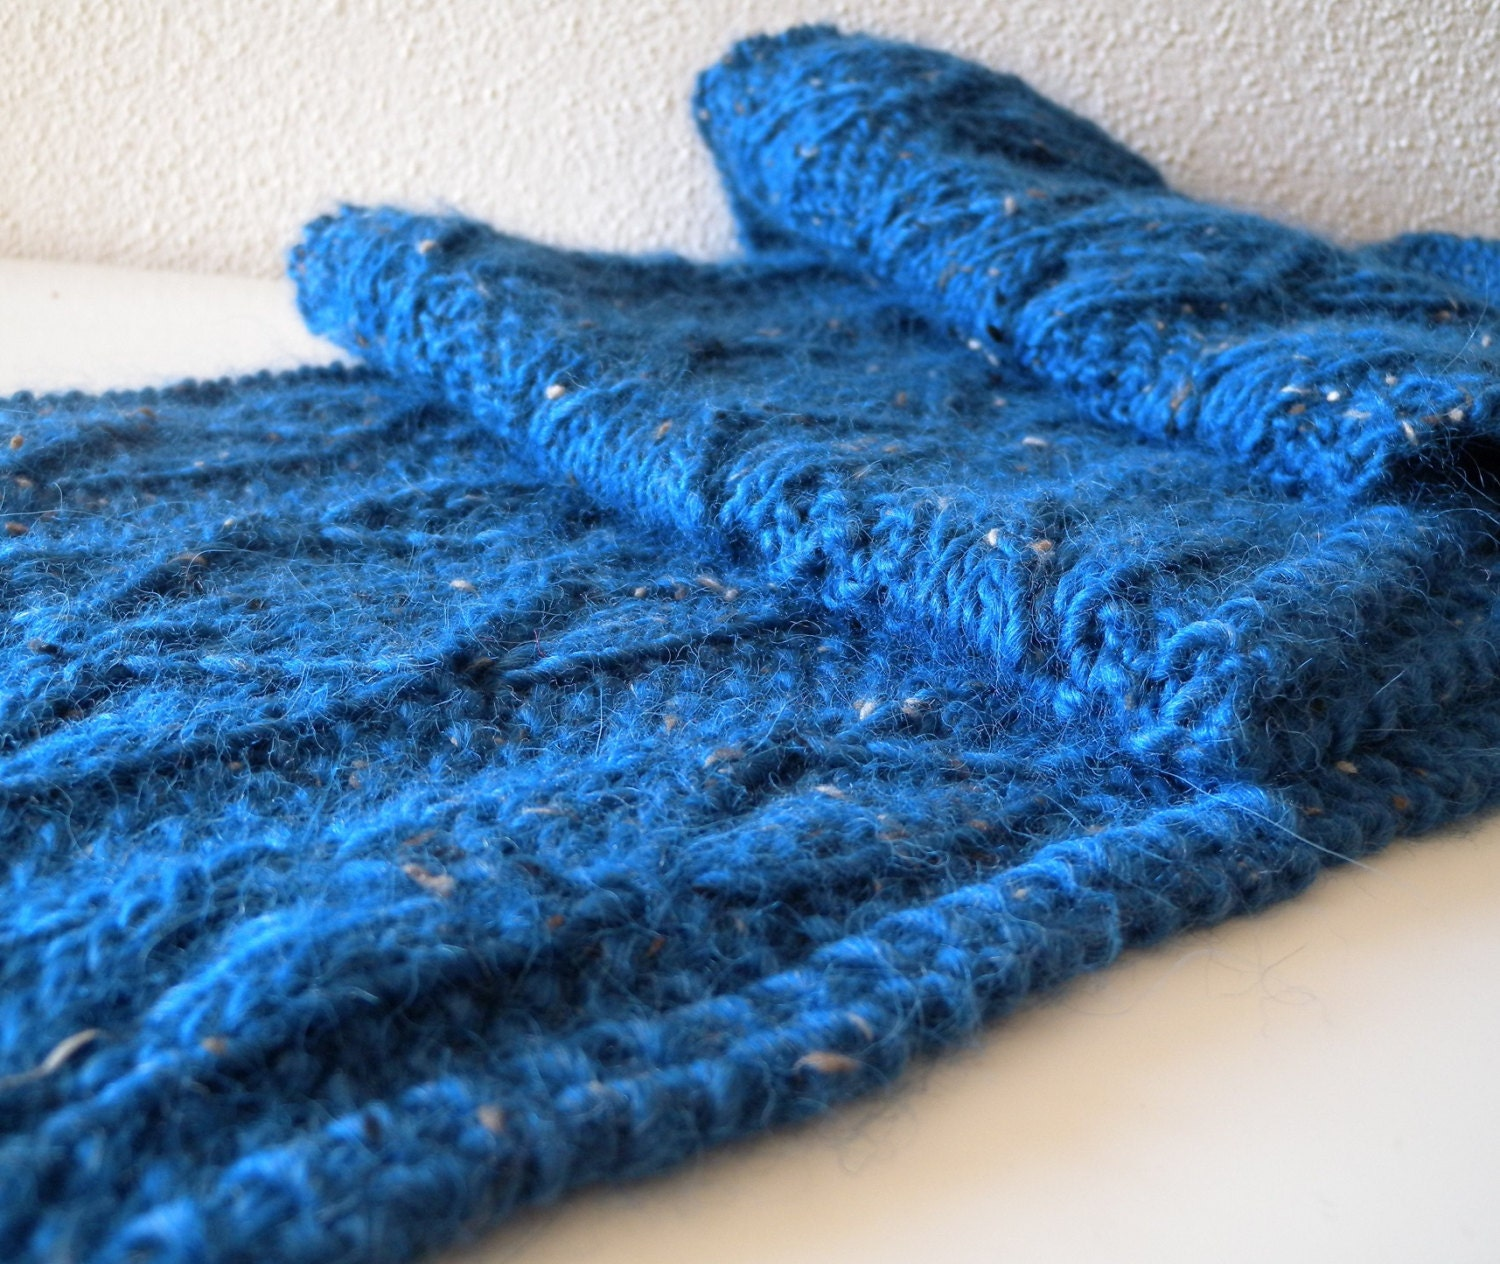 Quick Men s Scarf Knitting Pattern : Knitting Pattern for lace scarf in bulky wool and alpaca yarn, unisex scarf f...